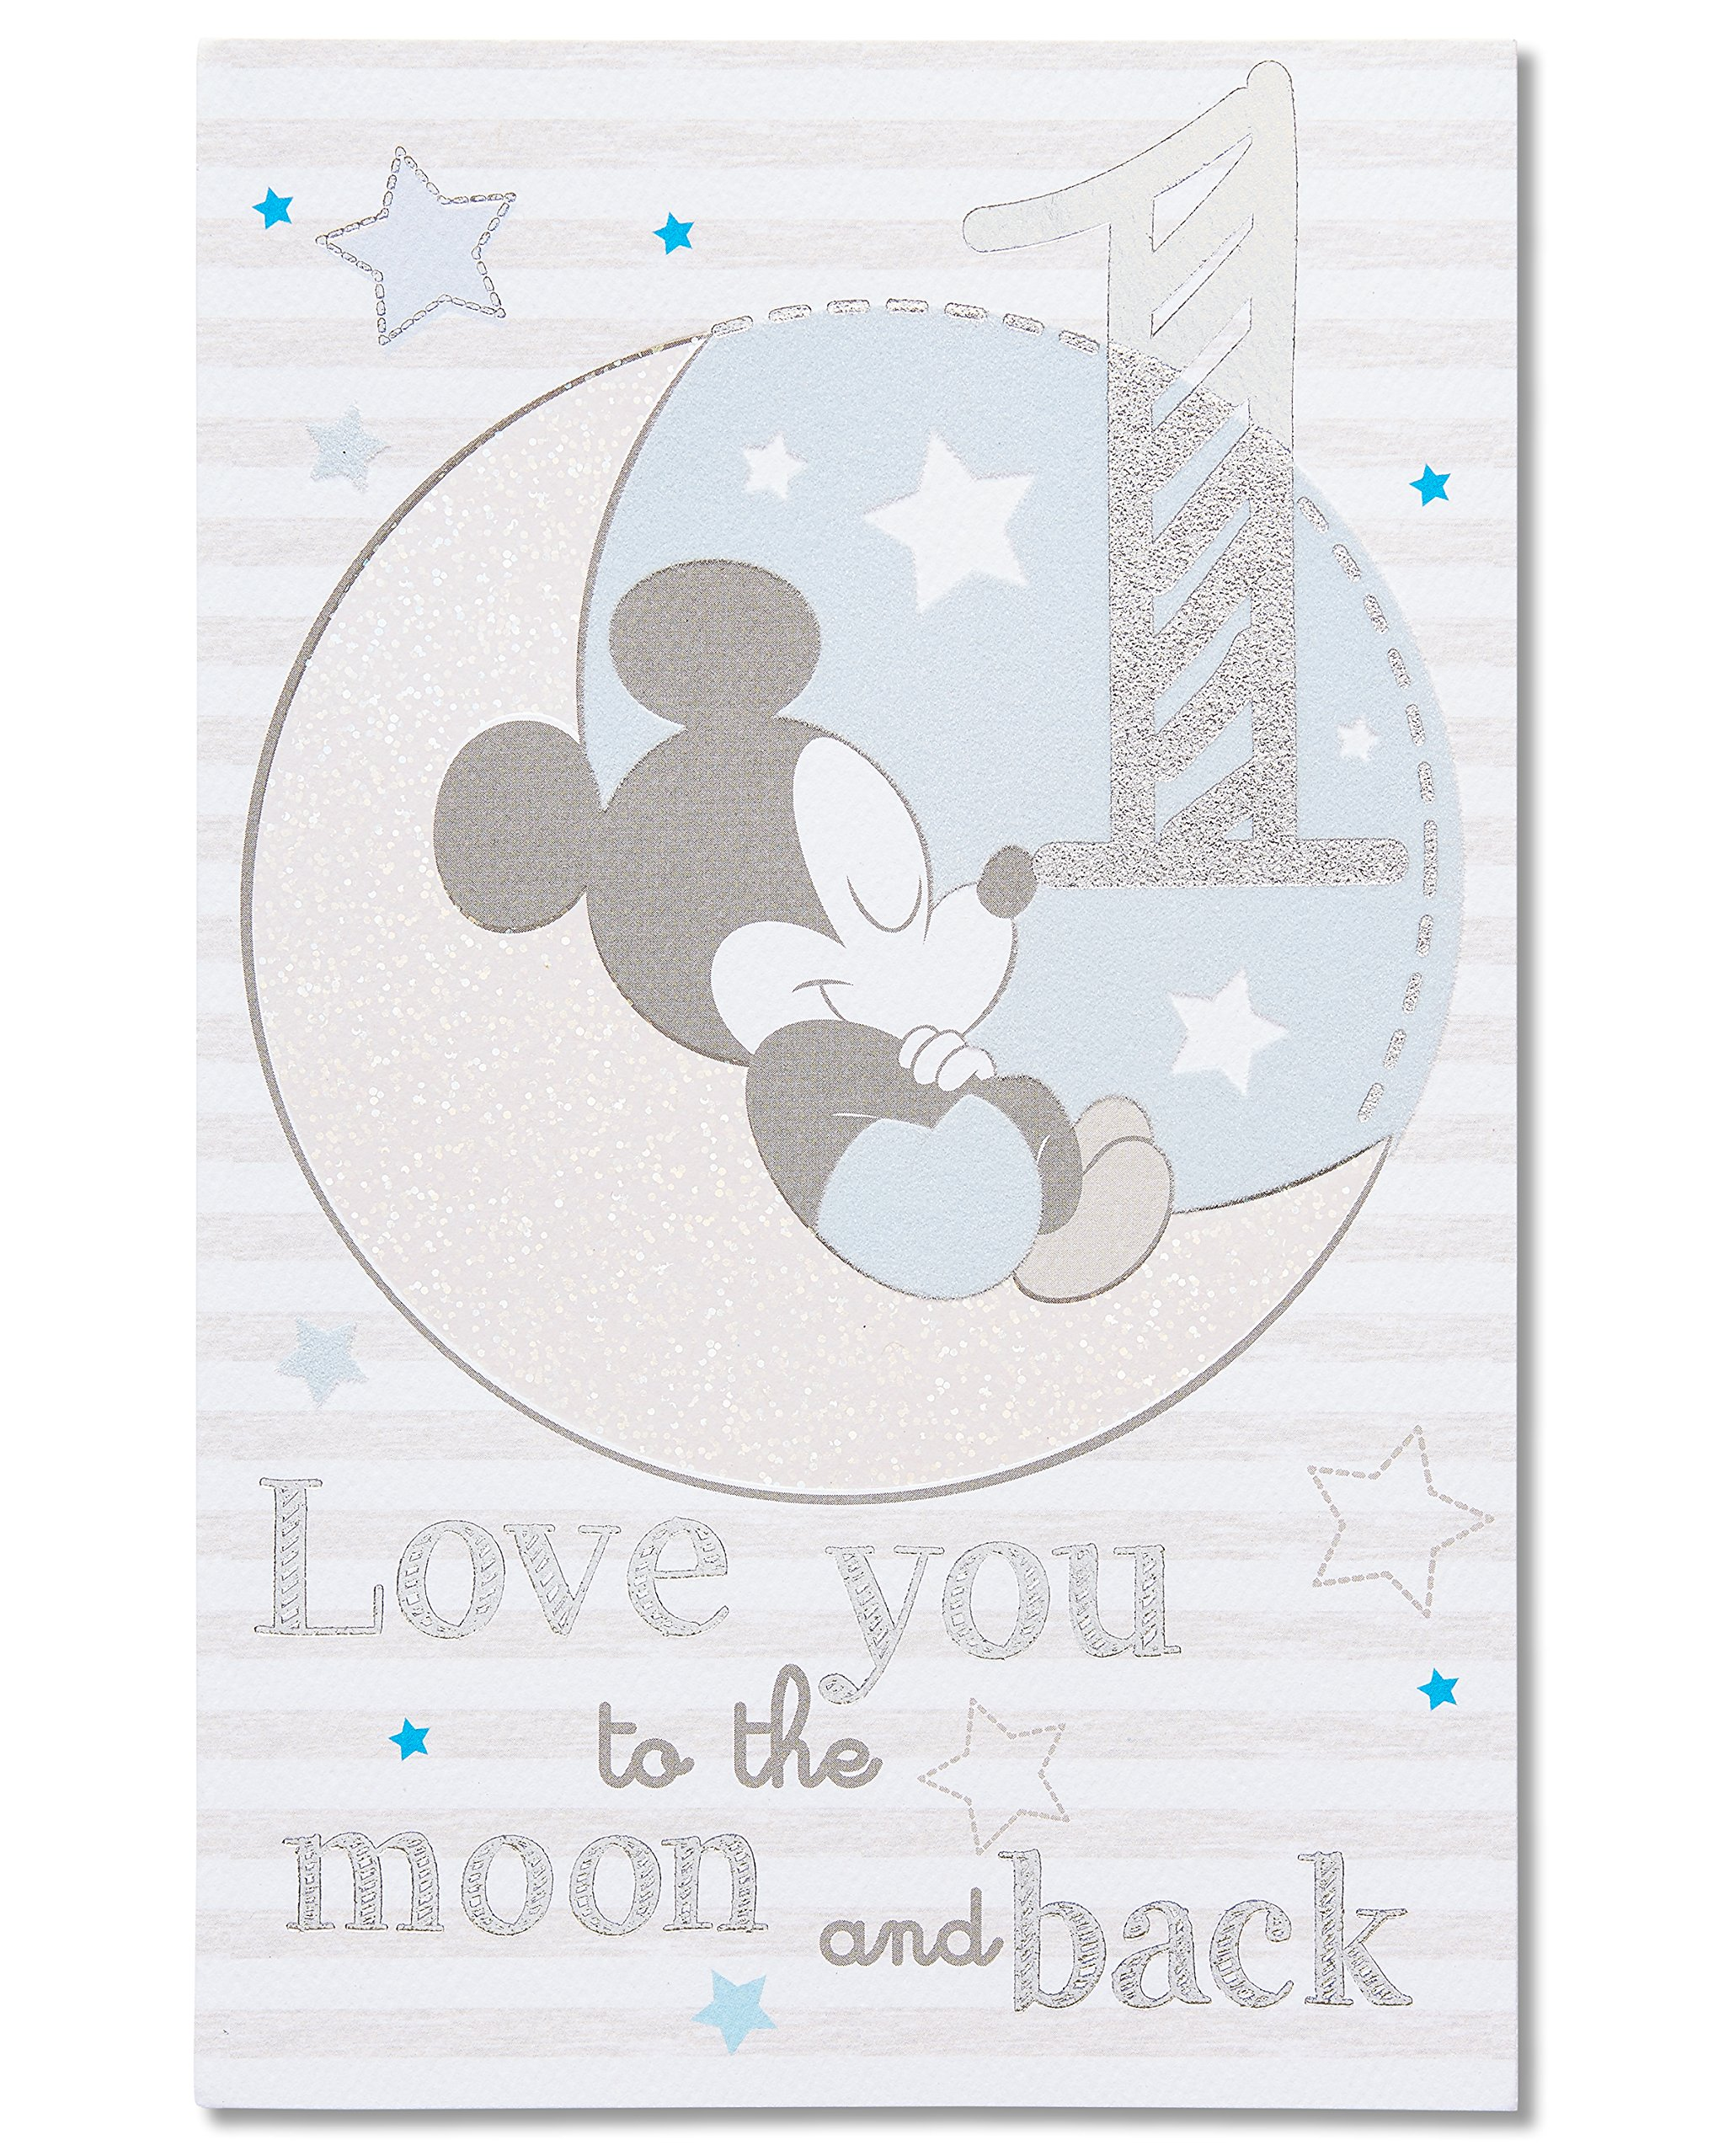 American Greetings 1st Birthday Card For Boy Mickey Mouse Buy Online In Bermuda American Greetings Products In Bermuda See Prices Reviews And Free Delivery Over Bd 70 Desertcart